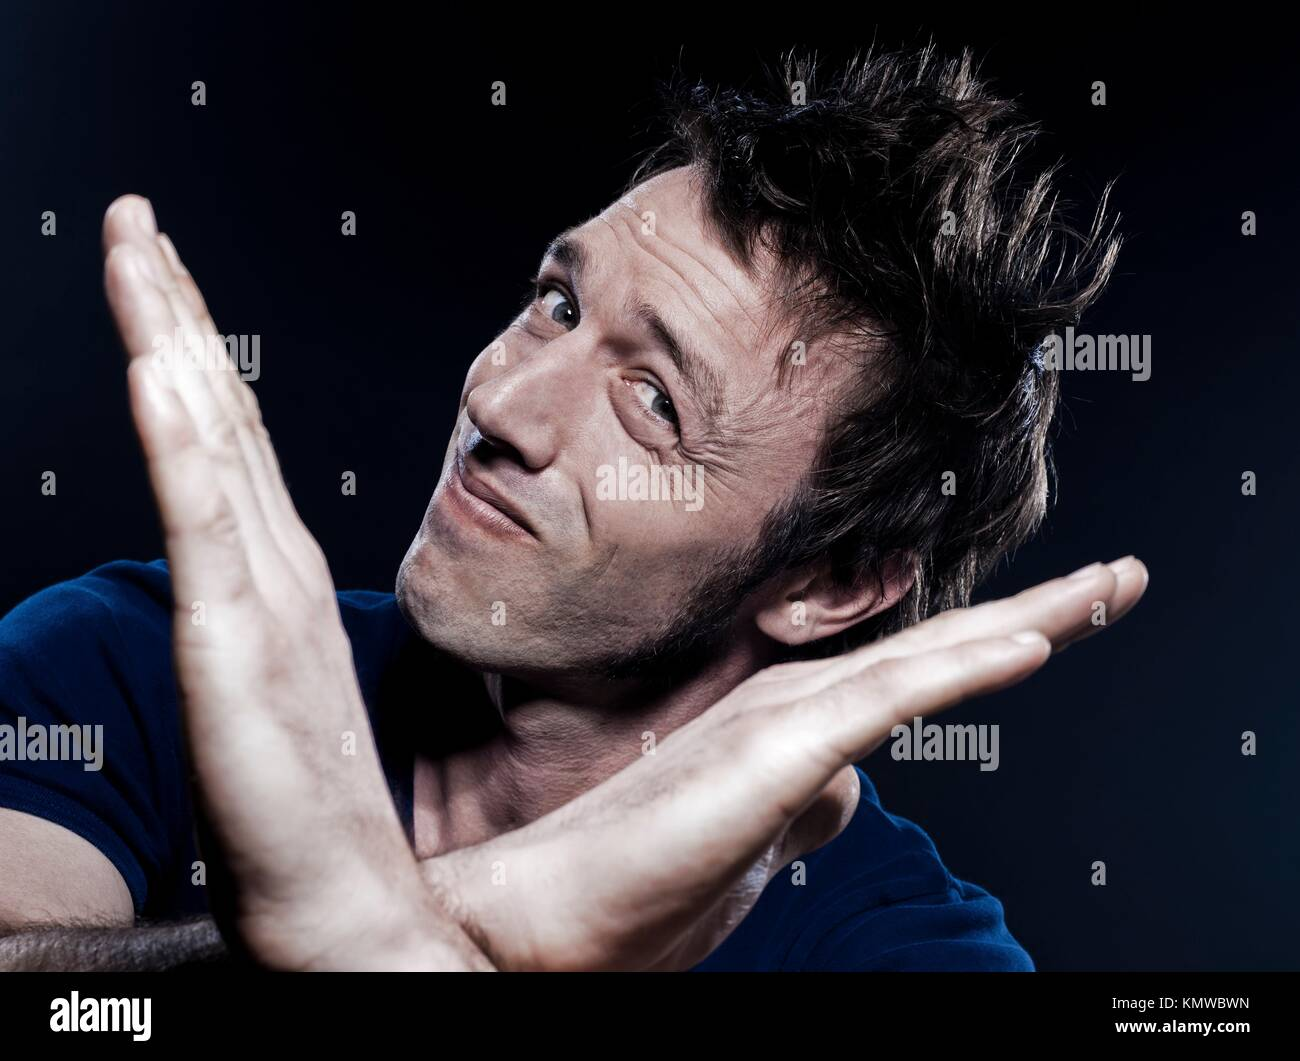 studio portrait on black background of a funny expressive caucasian man time out pause gesturing - Stock Image